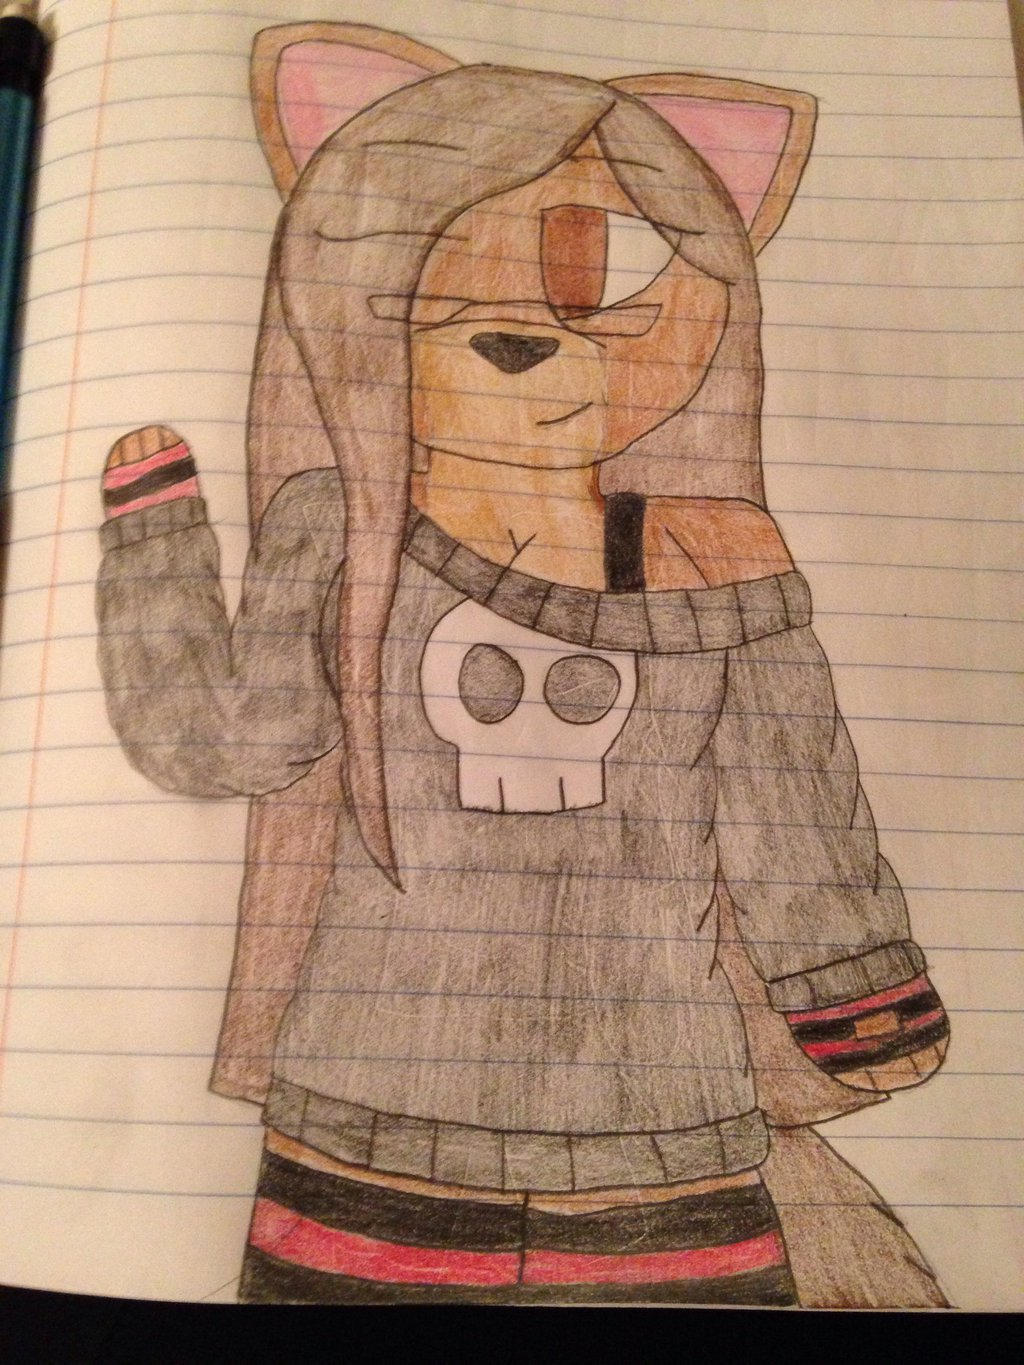 Anthro me! (New outfit design)  by ShadAmyfangirl129